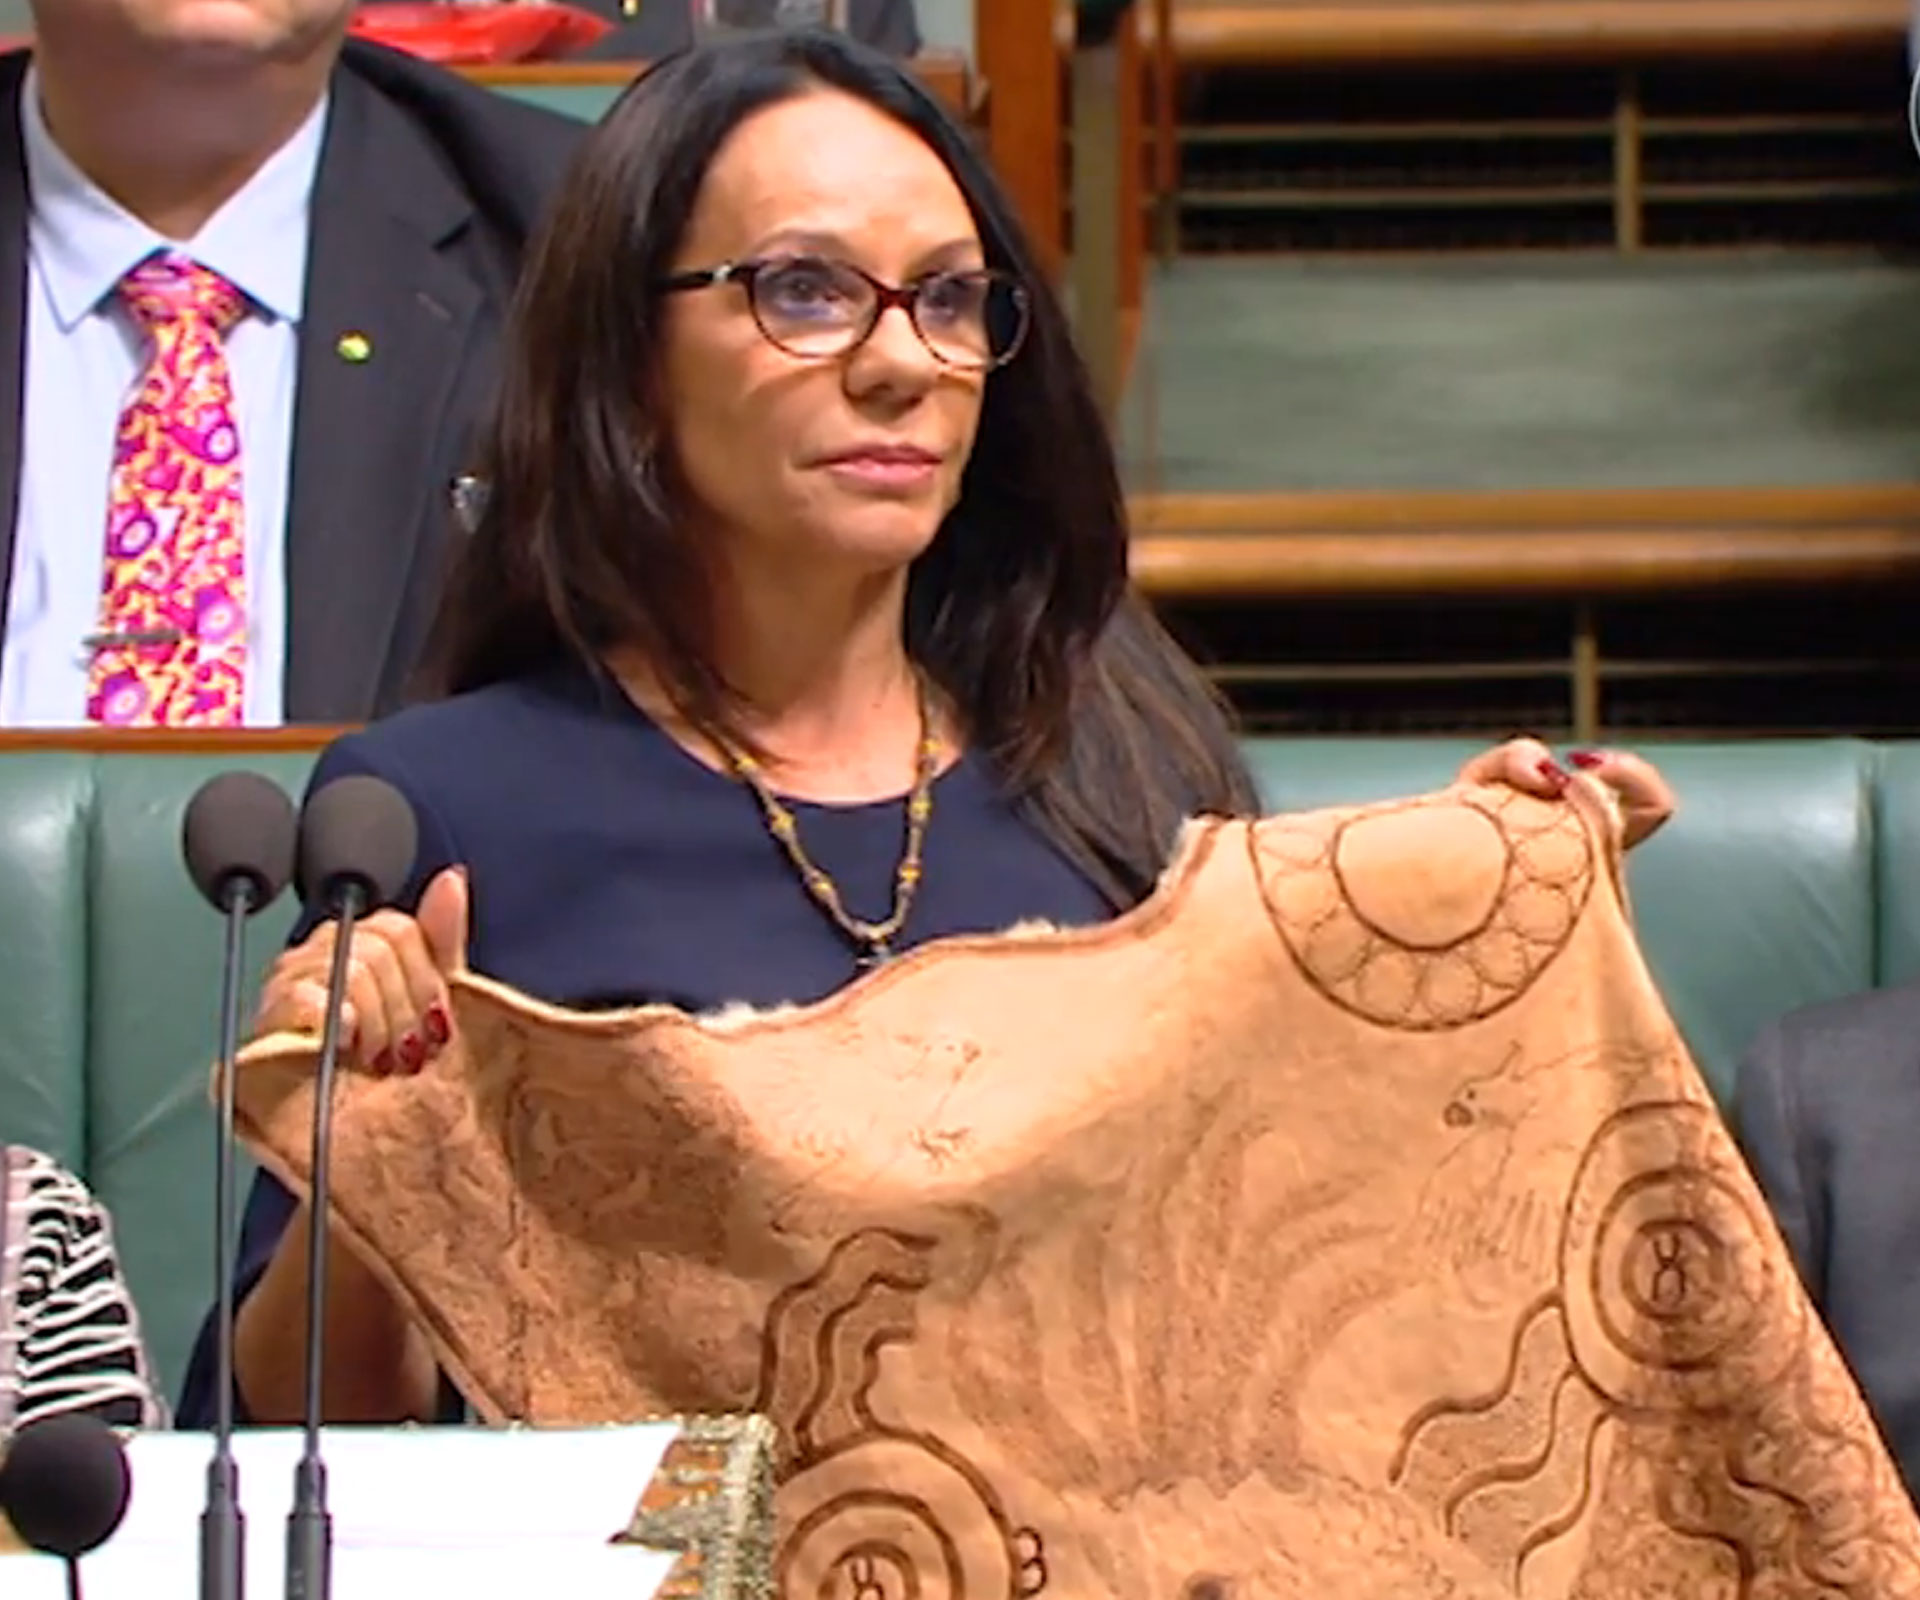 Indigenous MP Linda Burney delivers powerful maiden speech to federal parliament